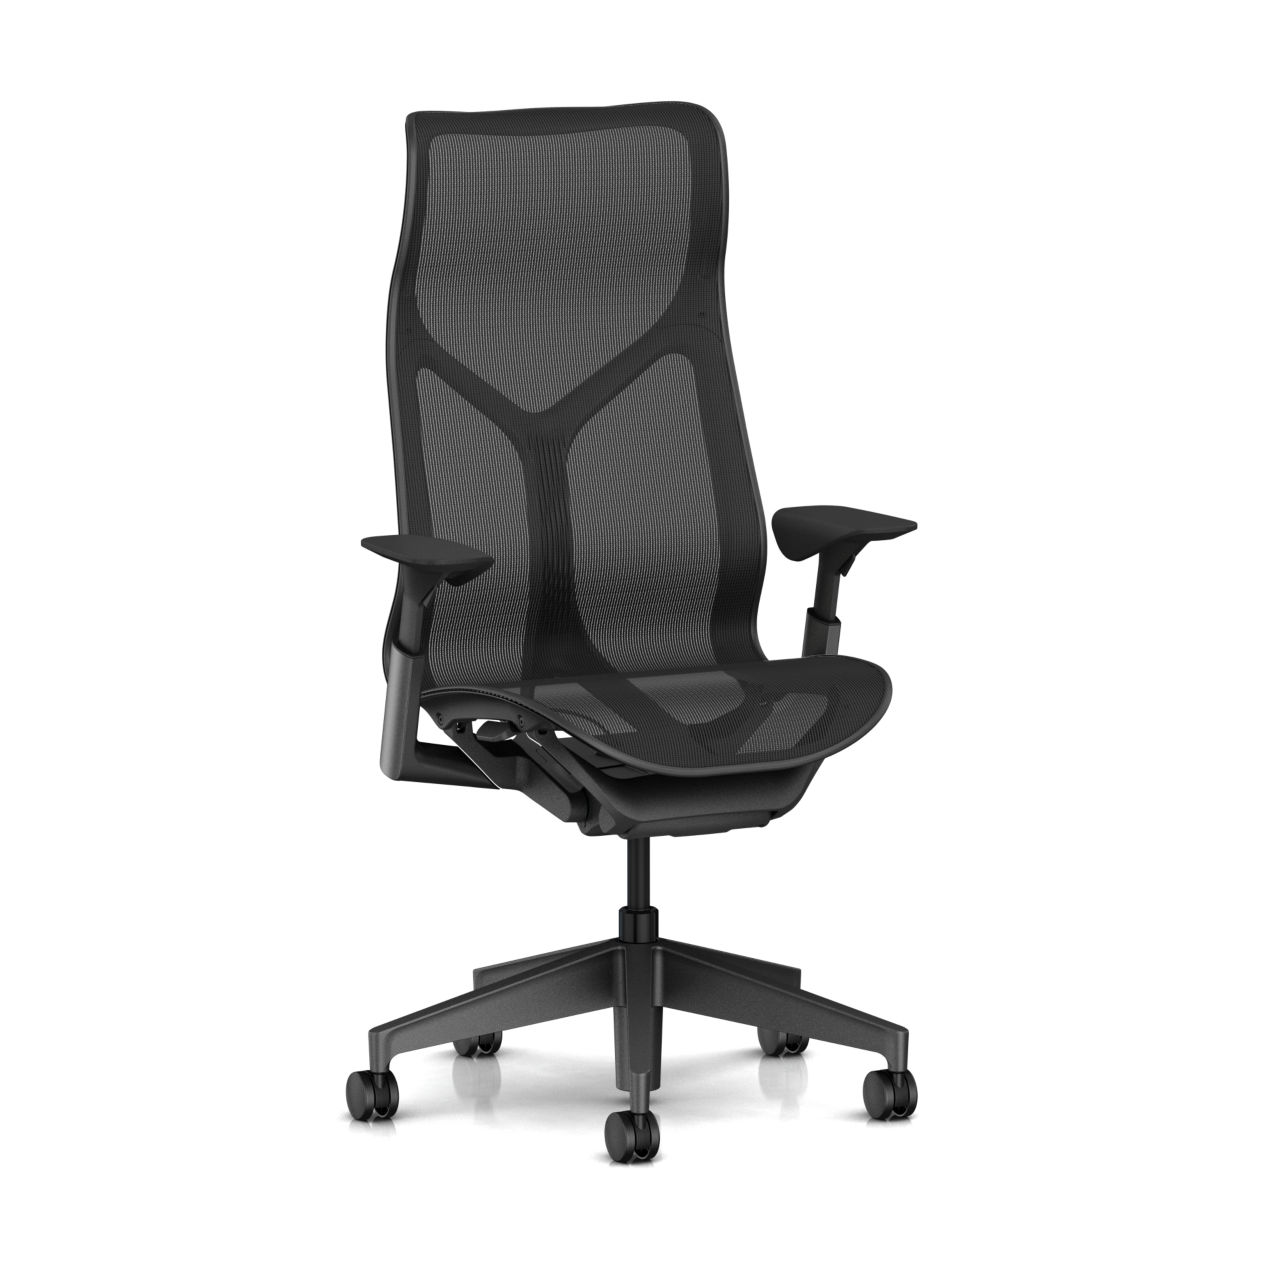 Cosm Chair in Graphite High Back Height by Herman Miller